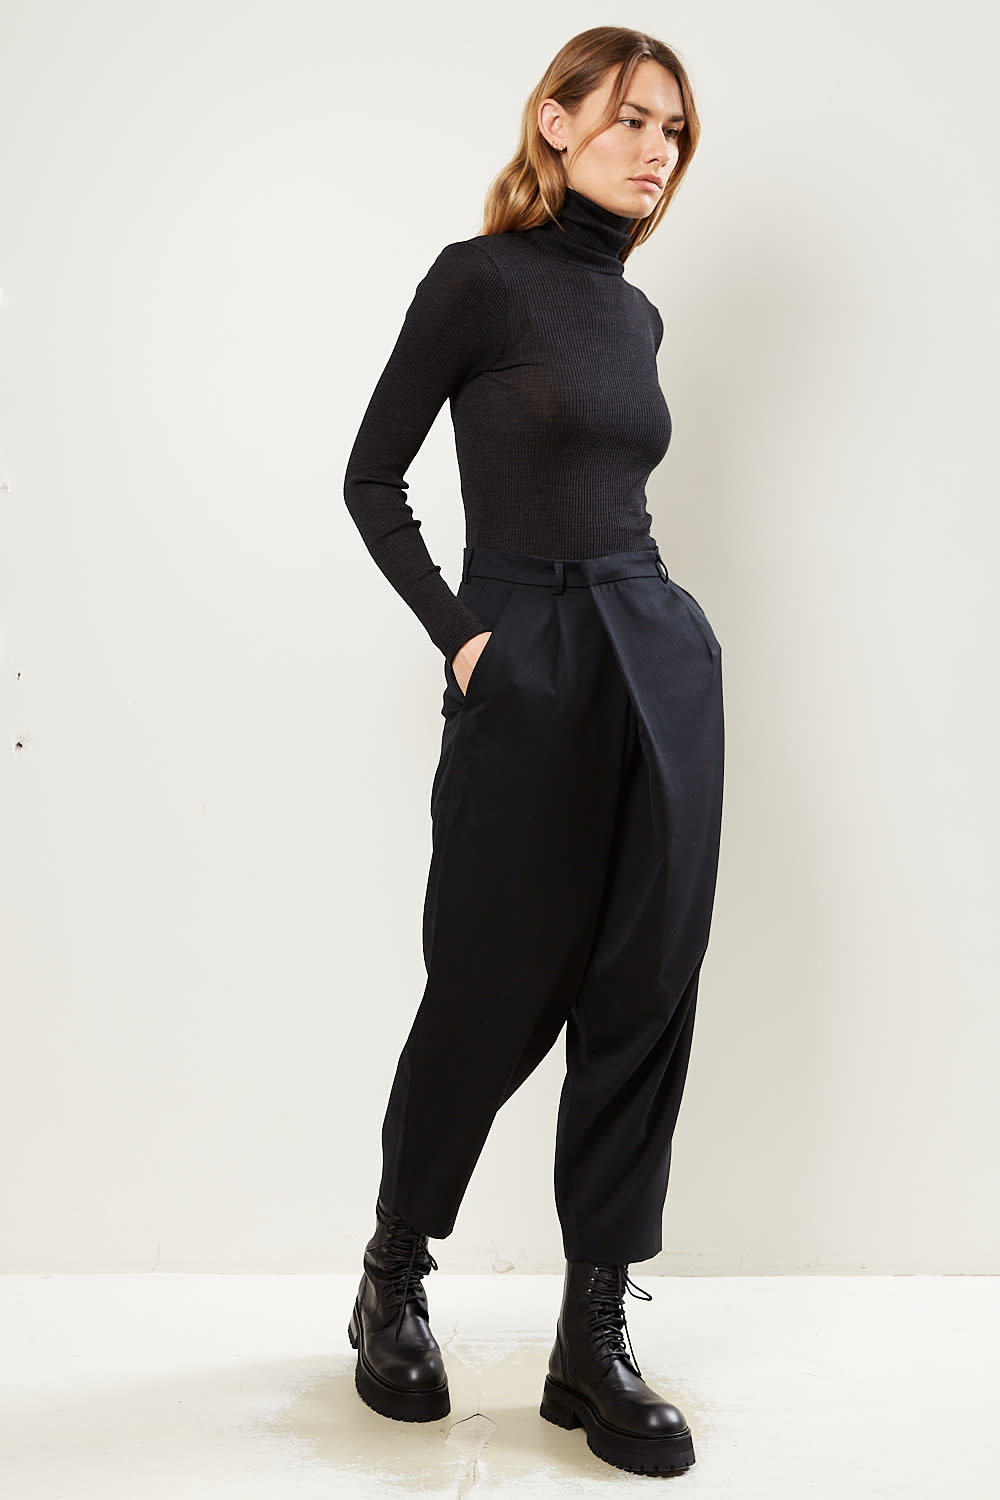 Hope Cast trousers